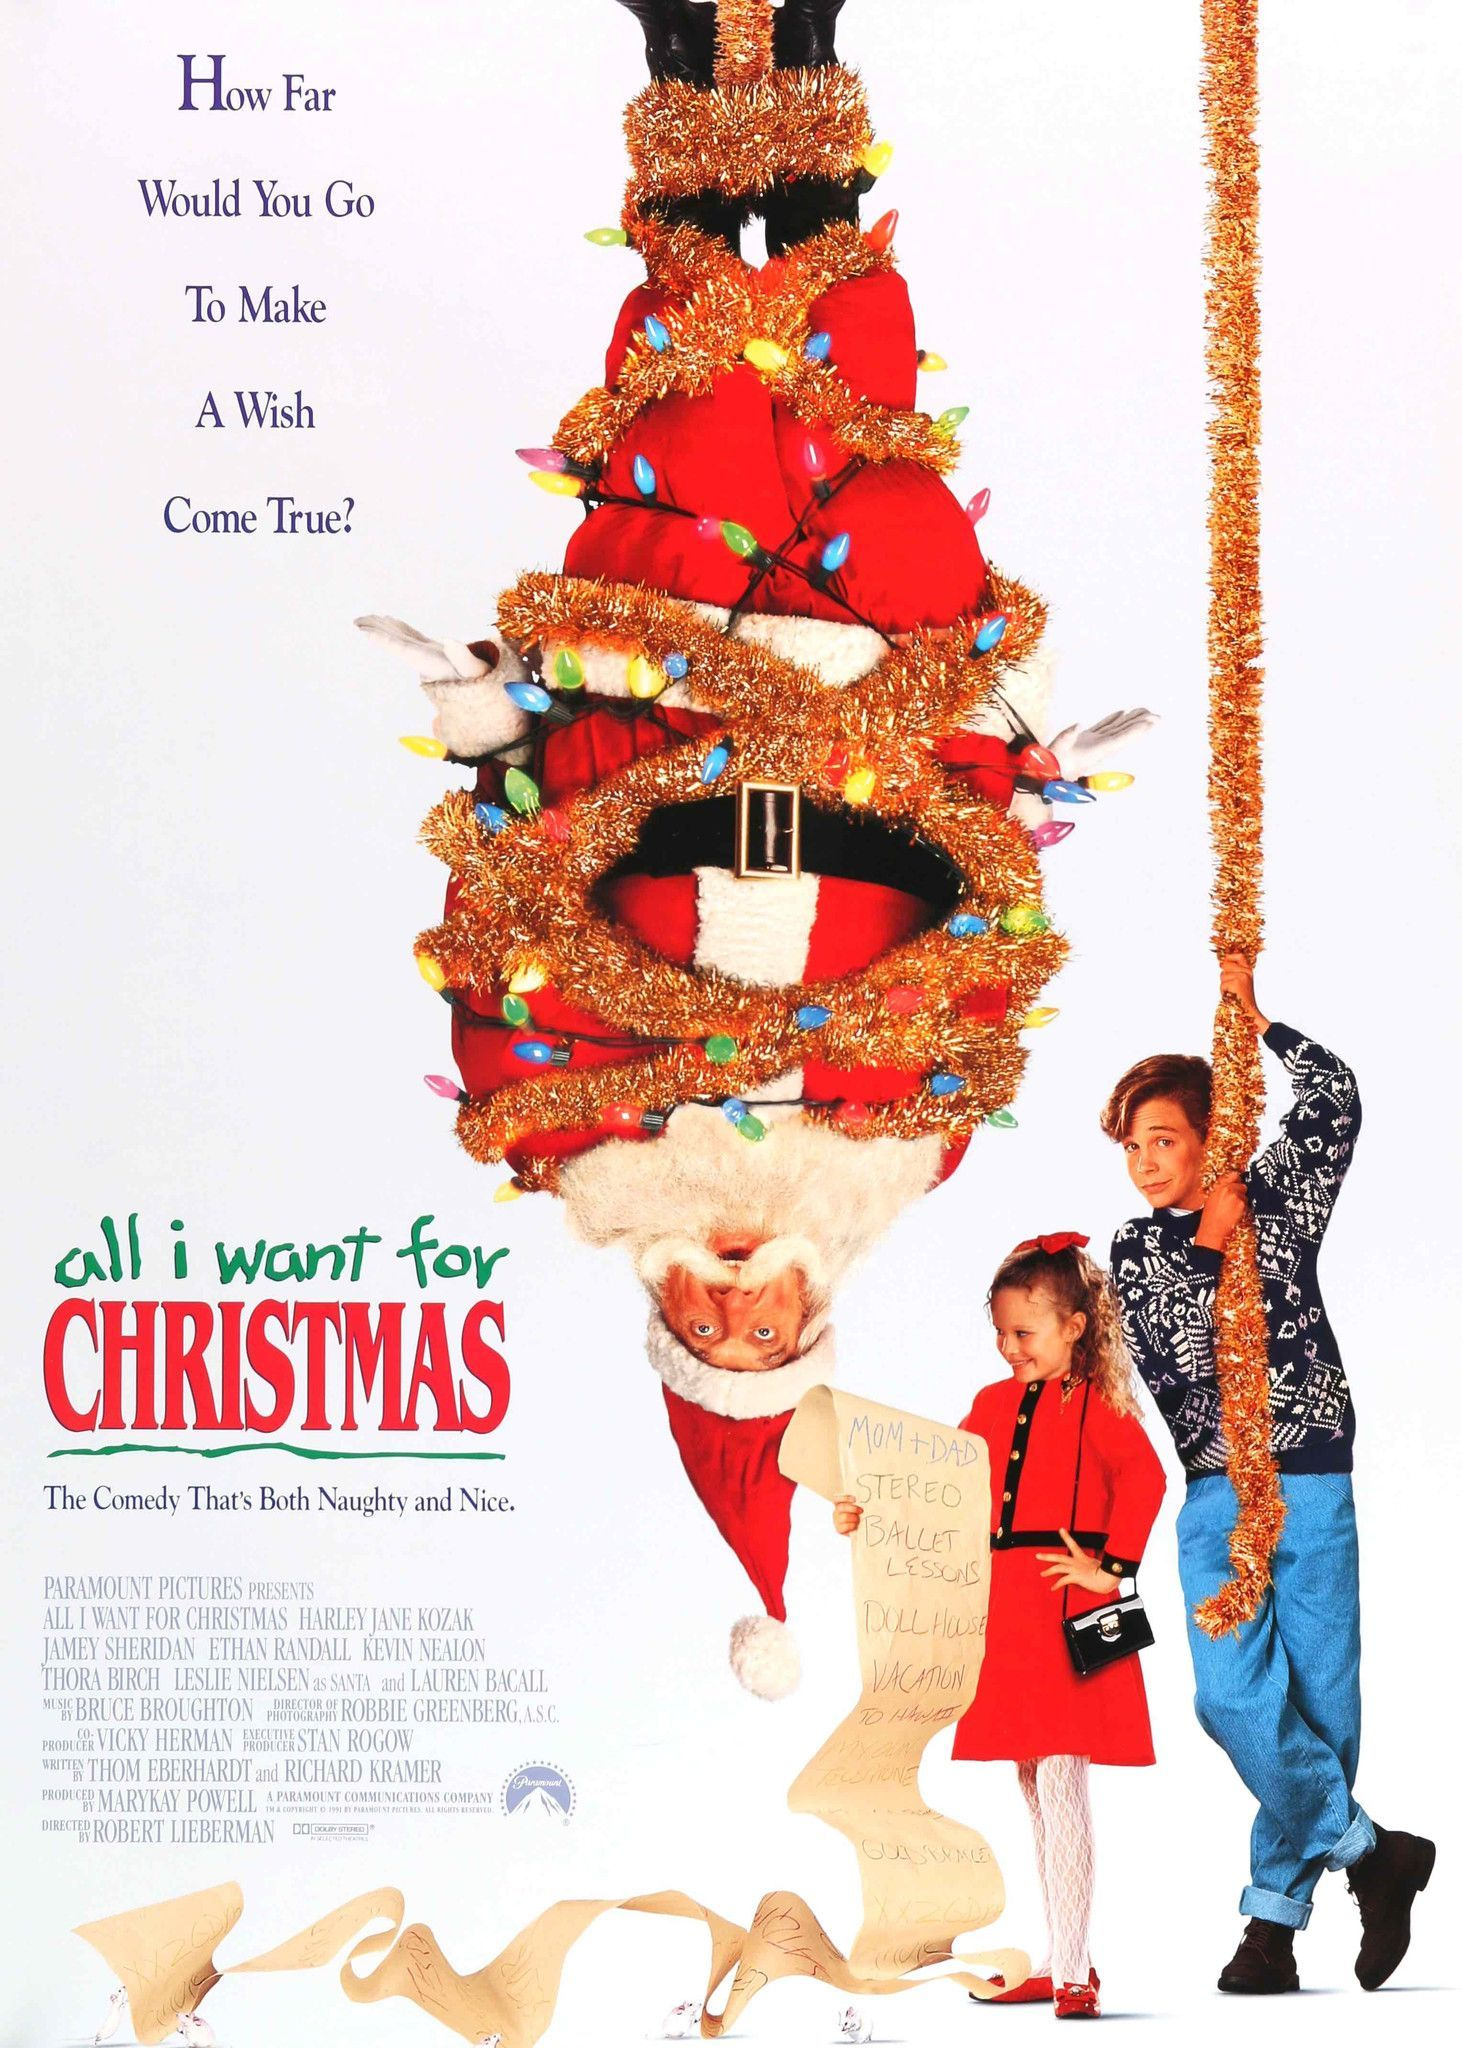 All I Want For Christmas 1991 Christmas Movies Christmas Poster Christmas Movies List